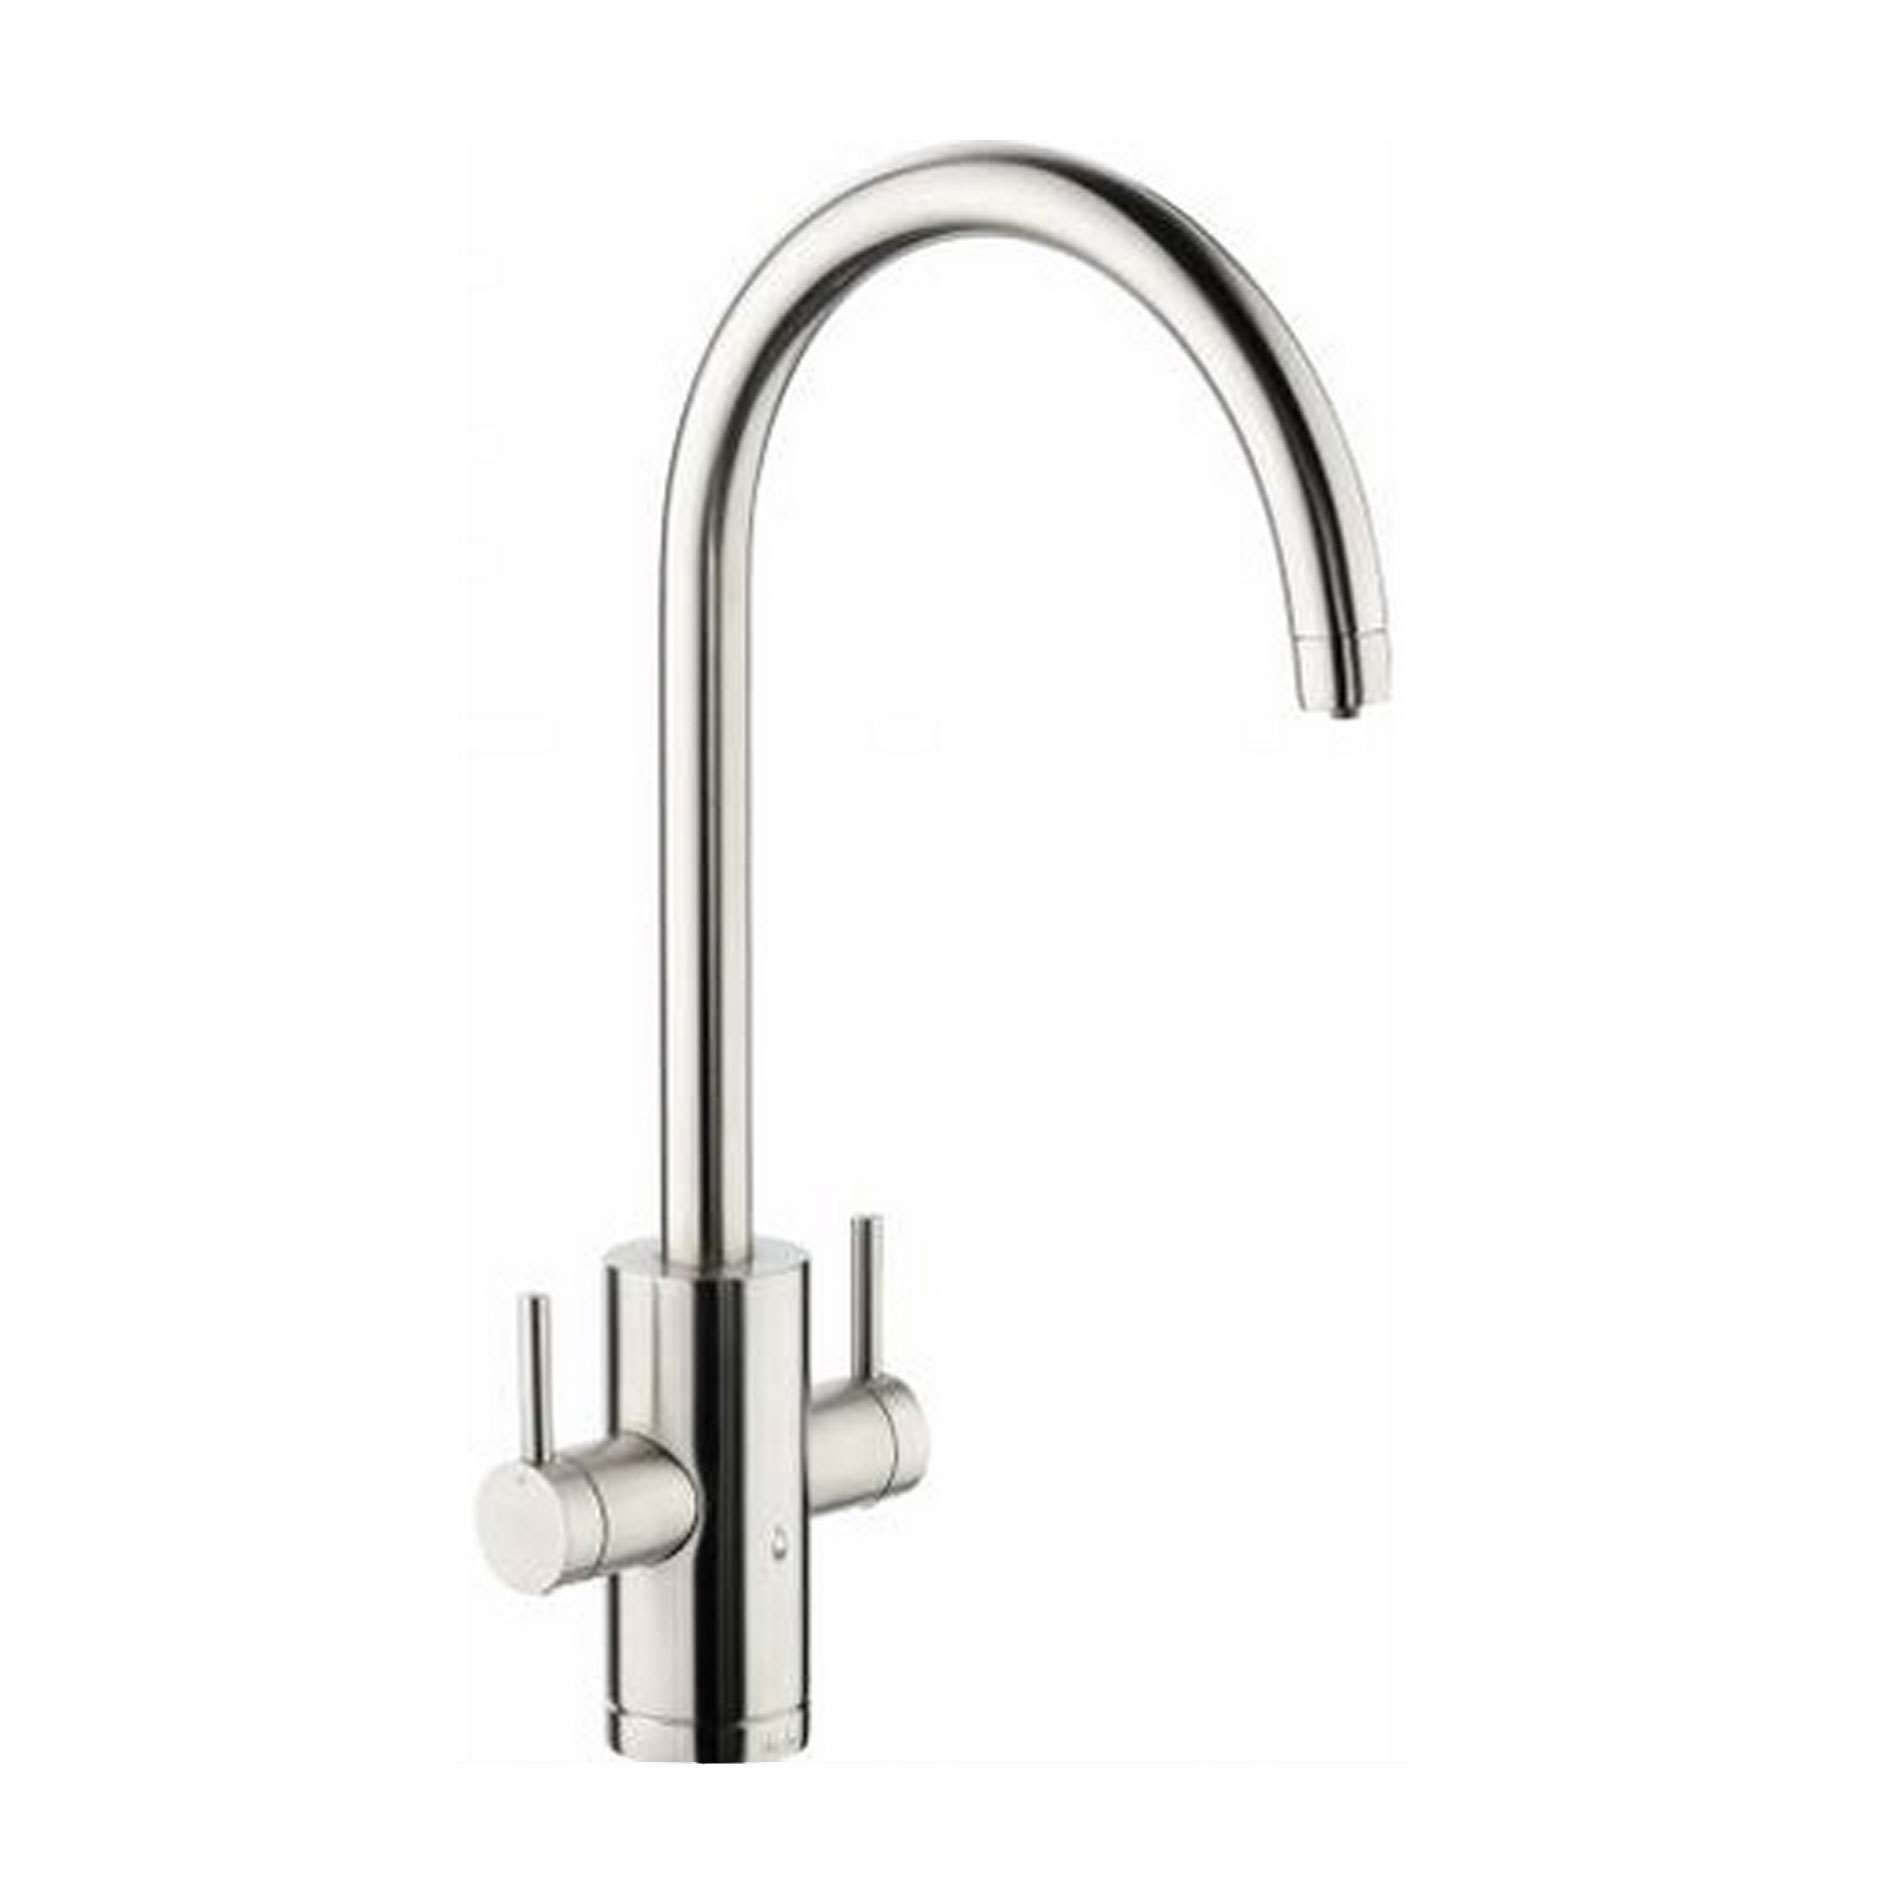 Picture of Pronteau Profile PT1002 Brushed Nickel Tap